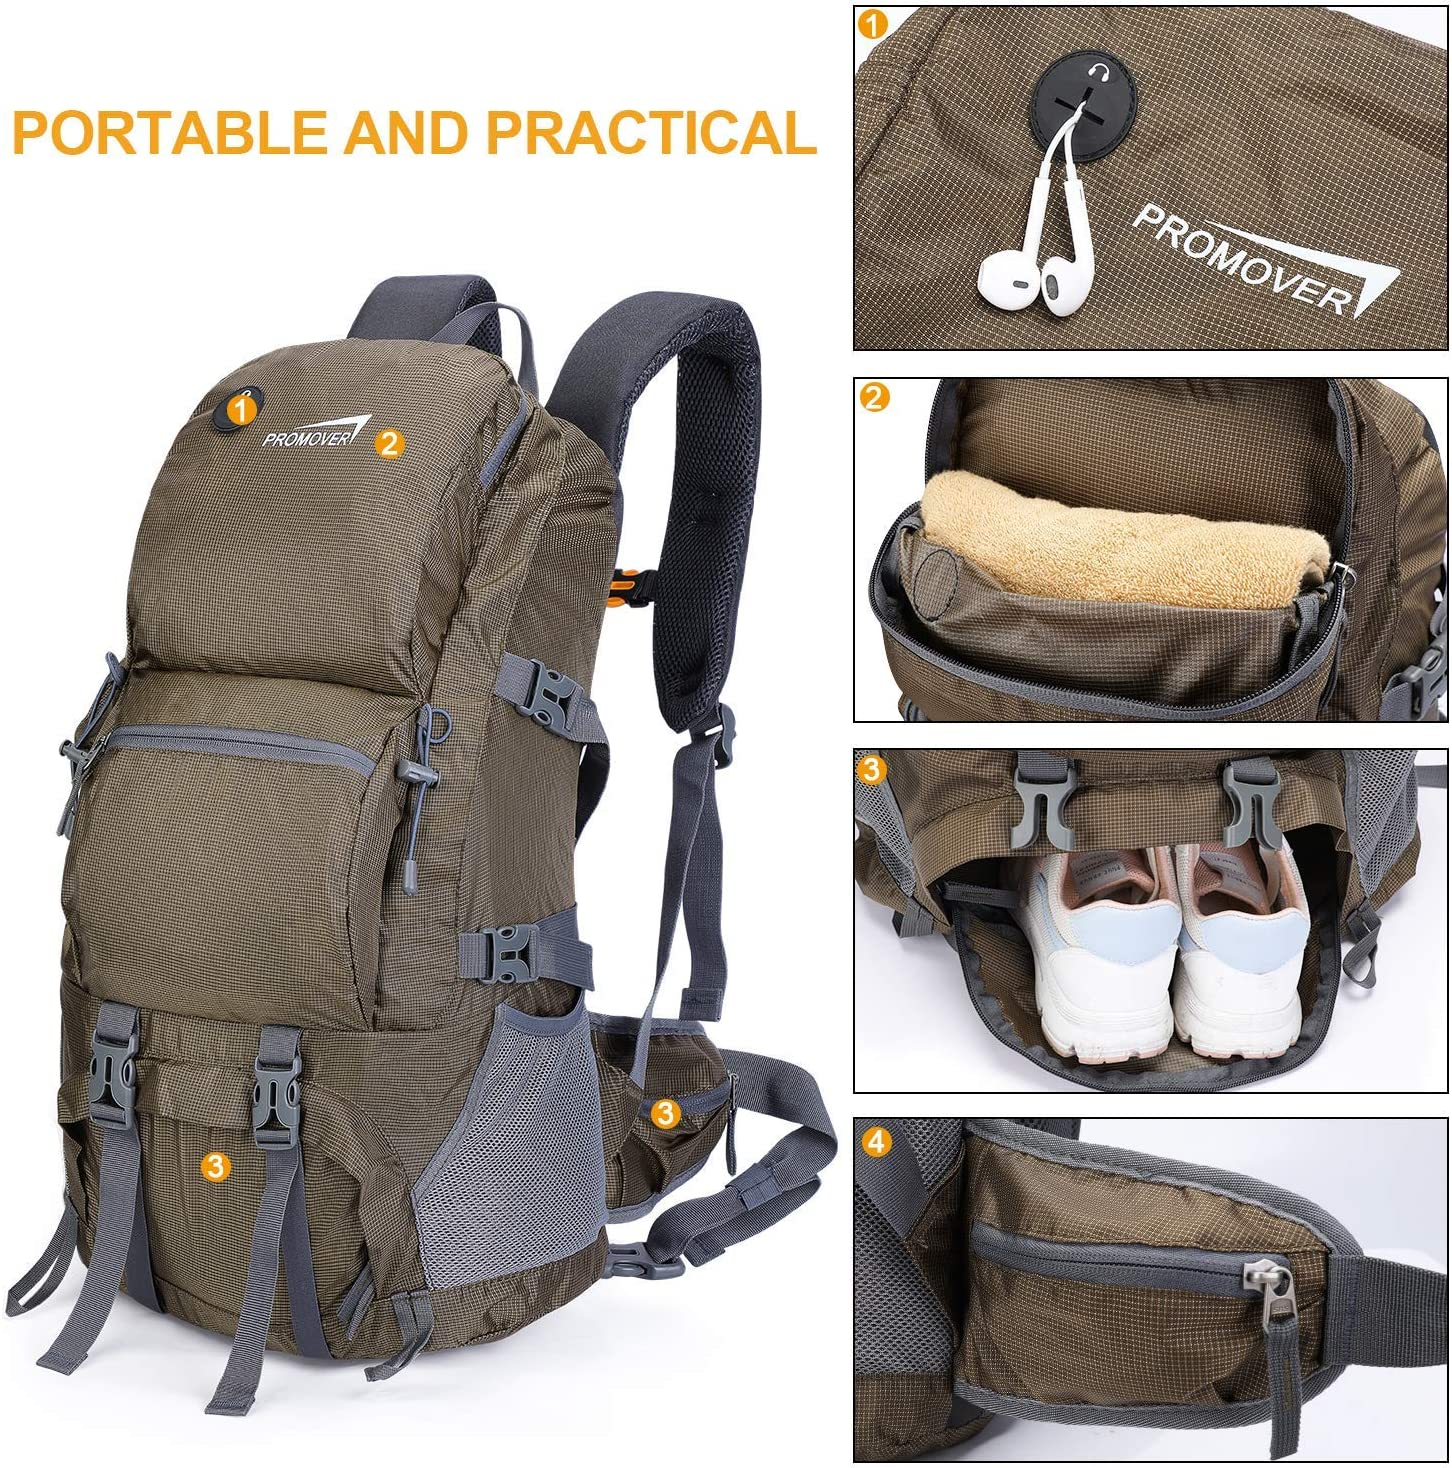 Promover 48L Outdoor Hiking Backpack Trekking Rucksack Travel Daypack Waterproof Sports Backpack for Climbing Camping Mountaineering Fishing Cycling Traveling Skiing